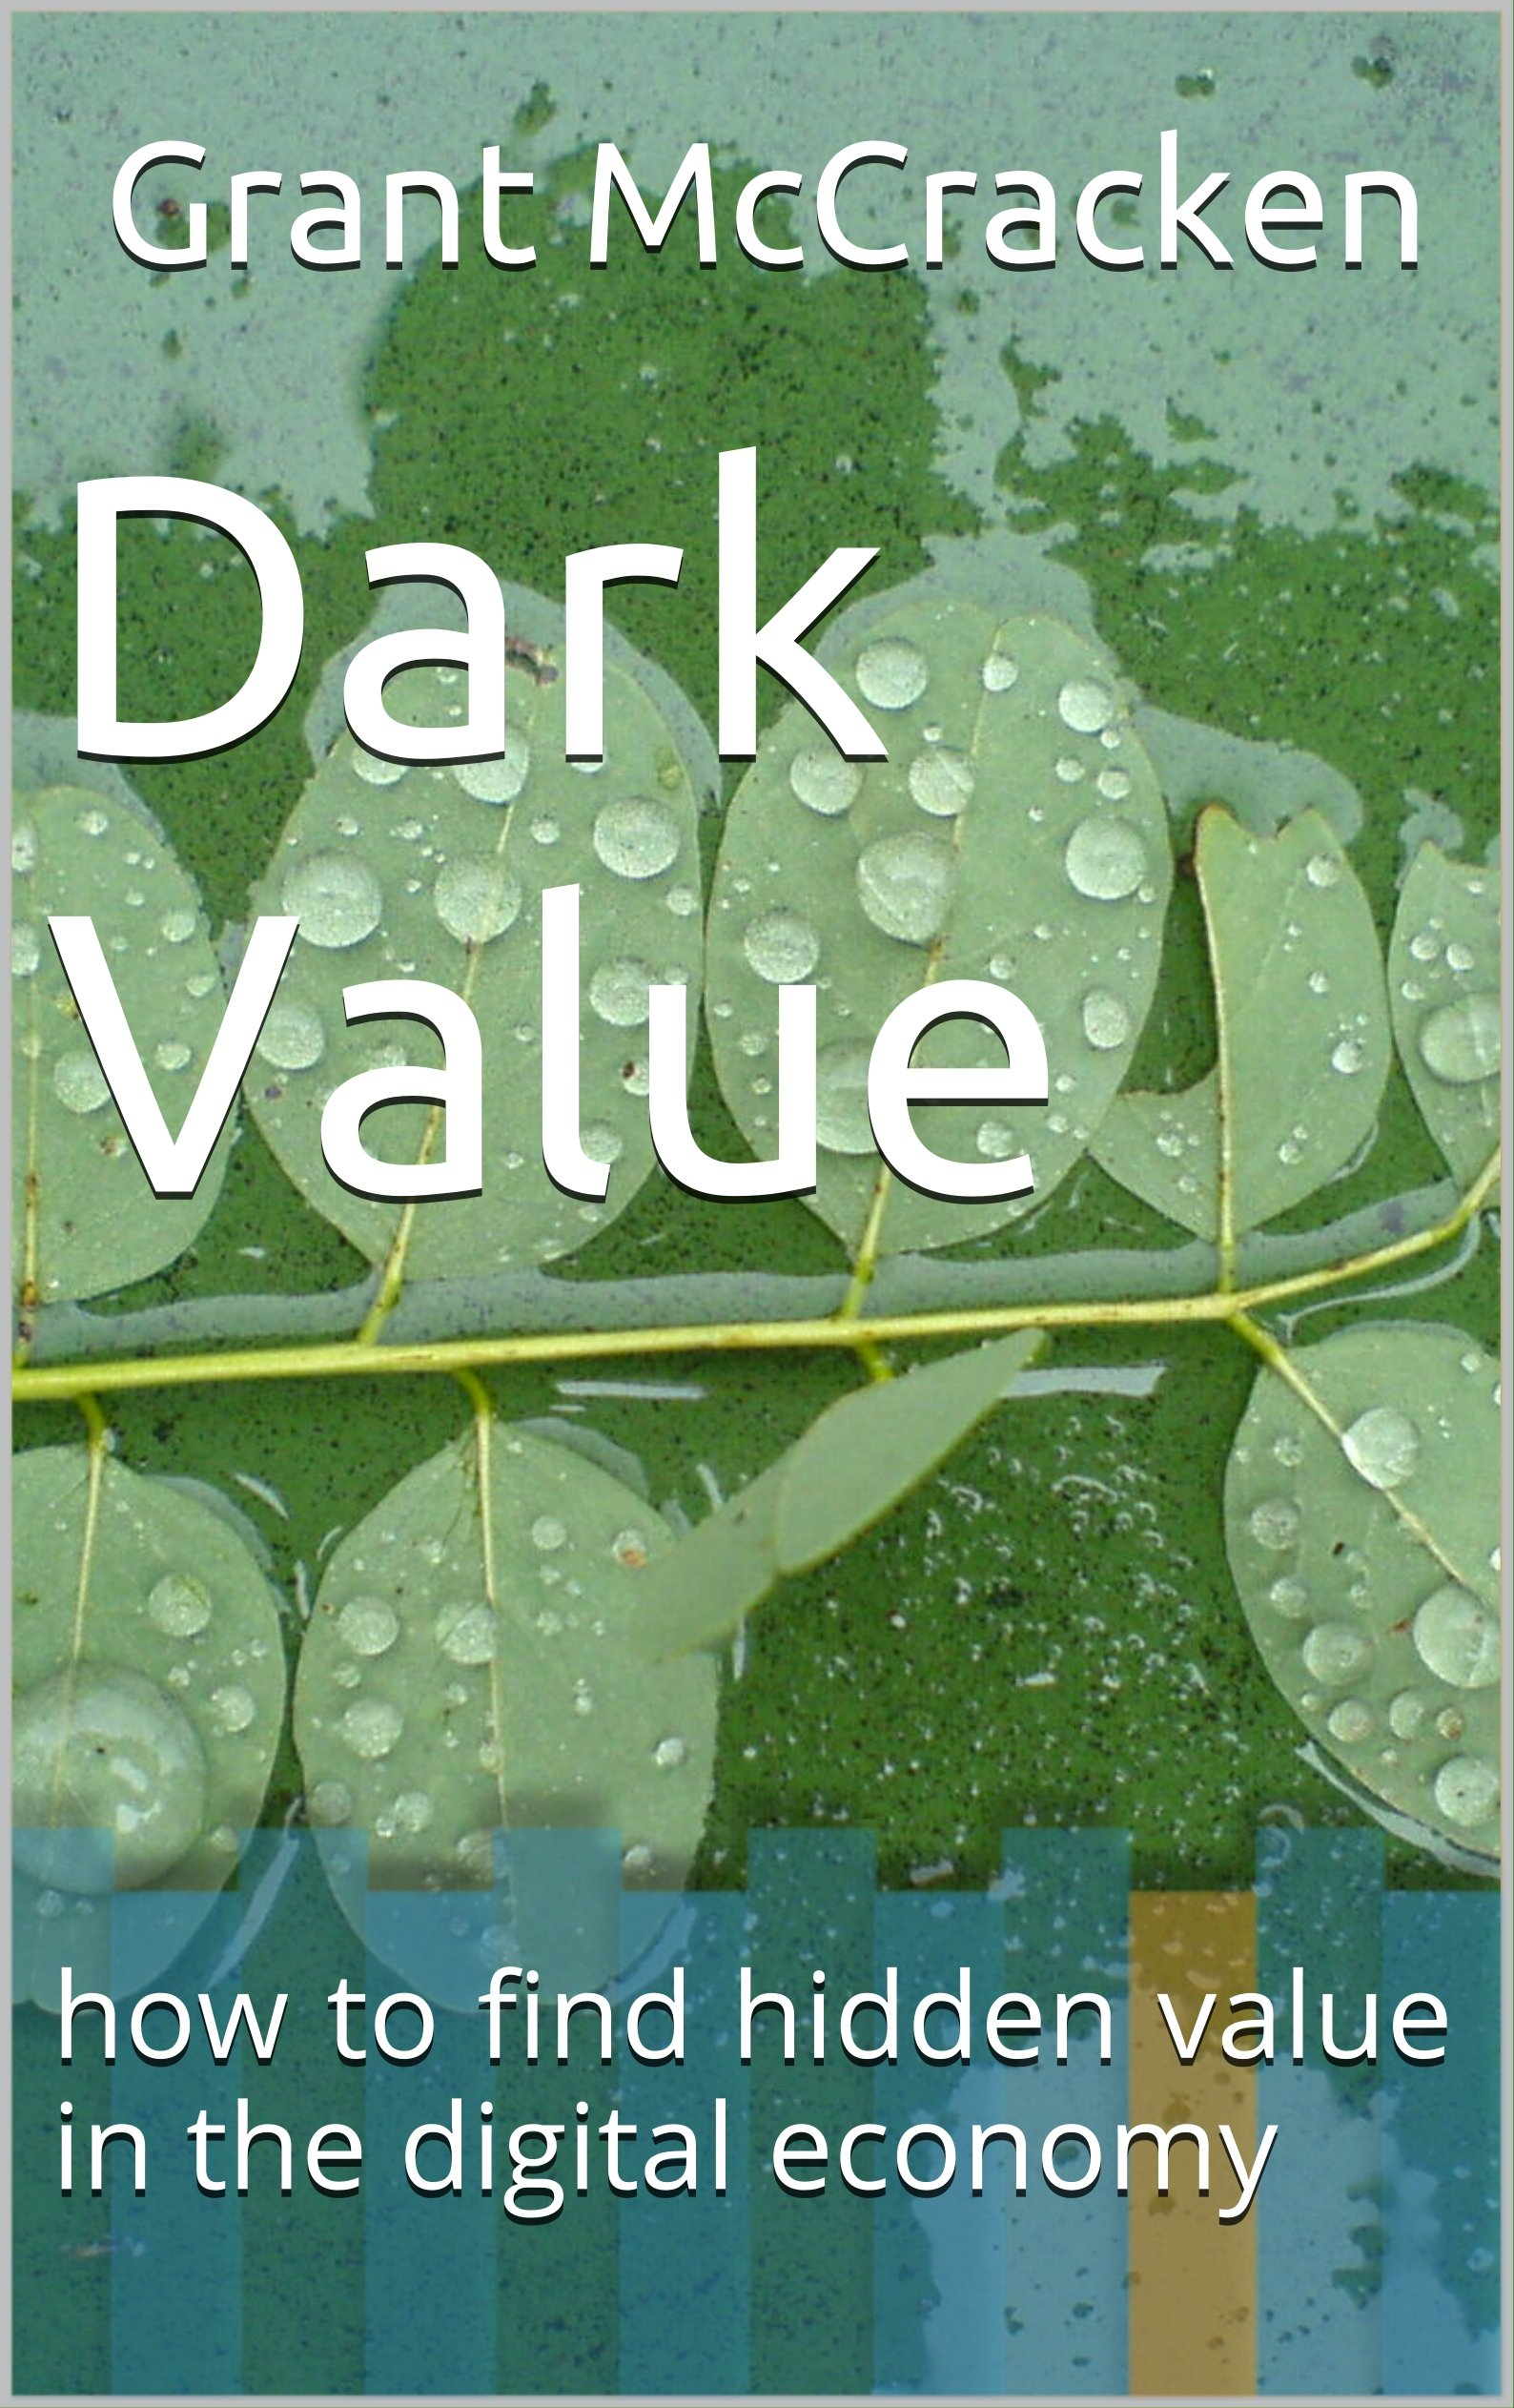 Dark Value: how to find hidden value in the digital economy